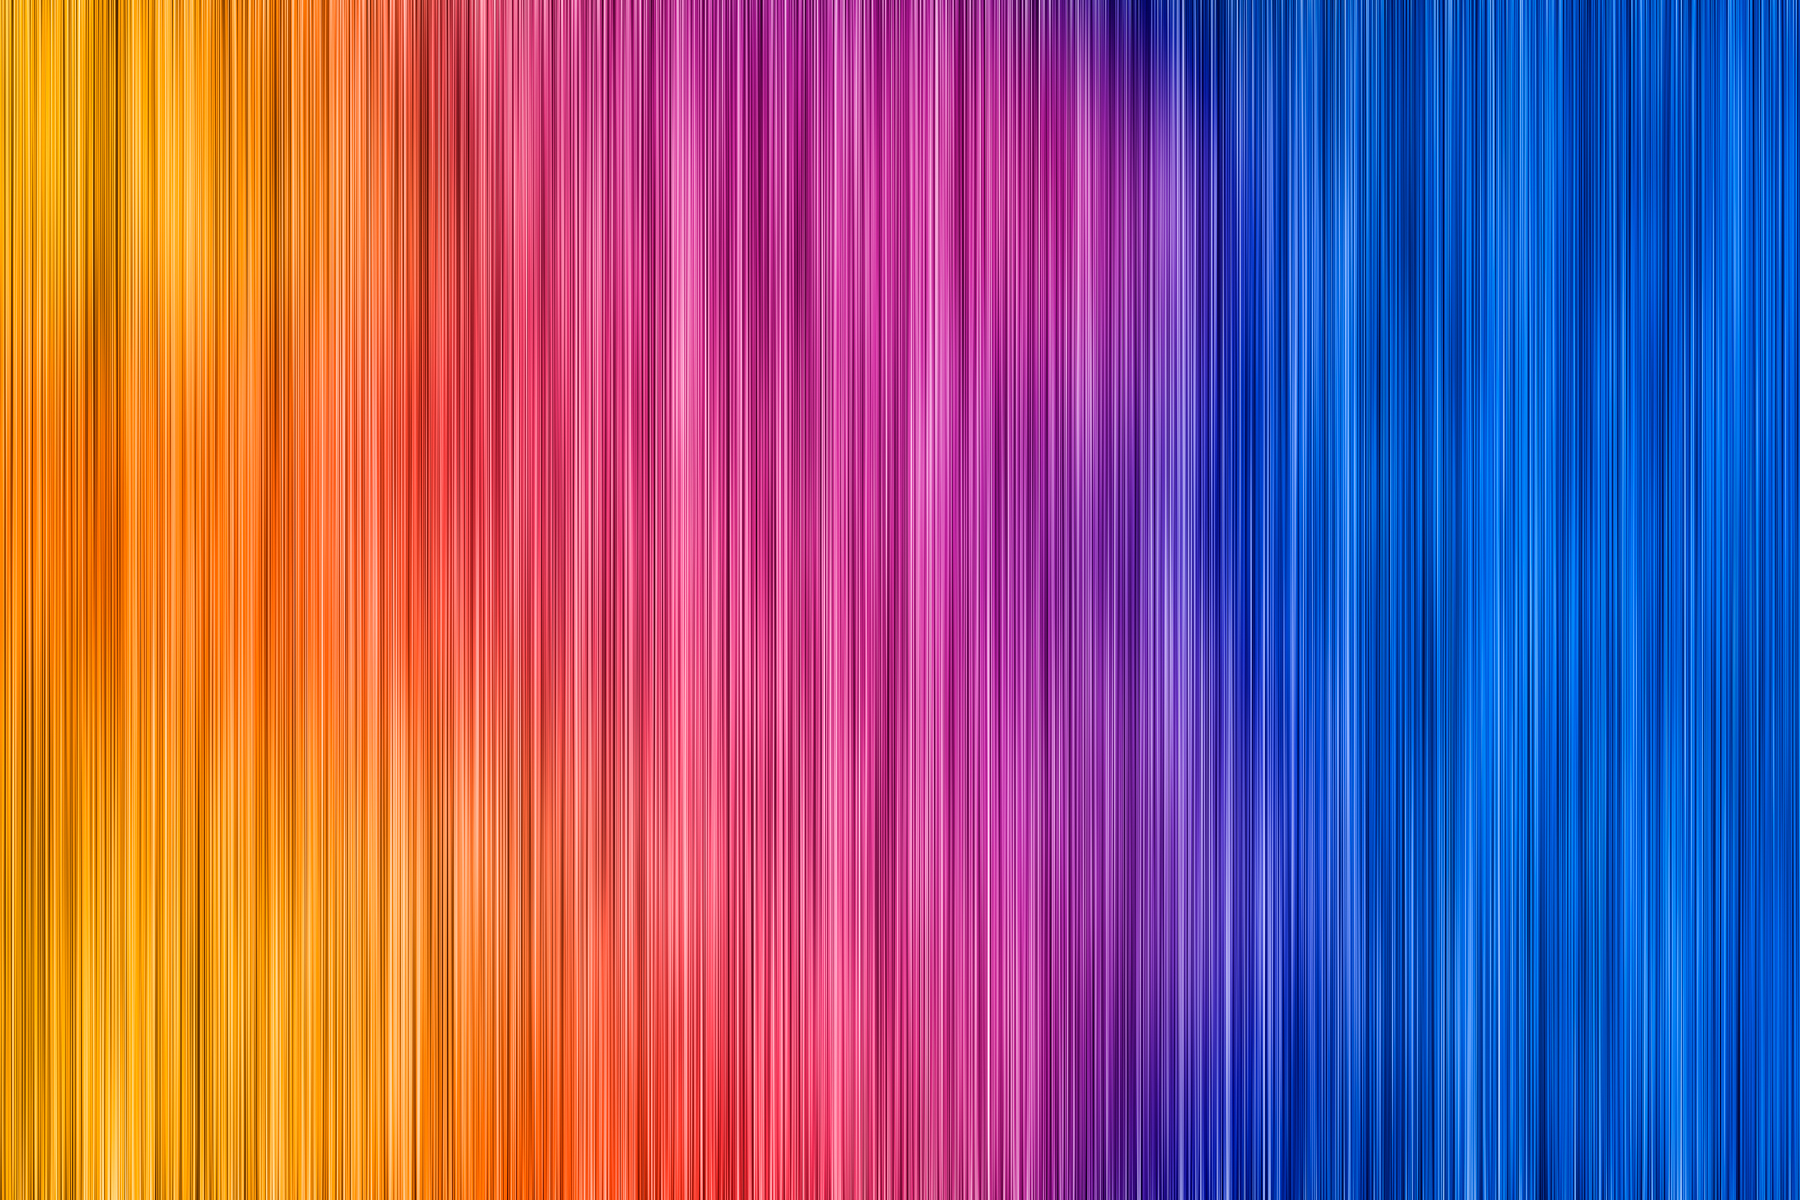 Vibrant abstract blur photo